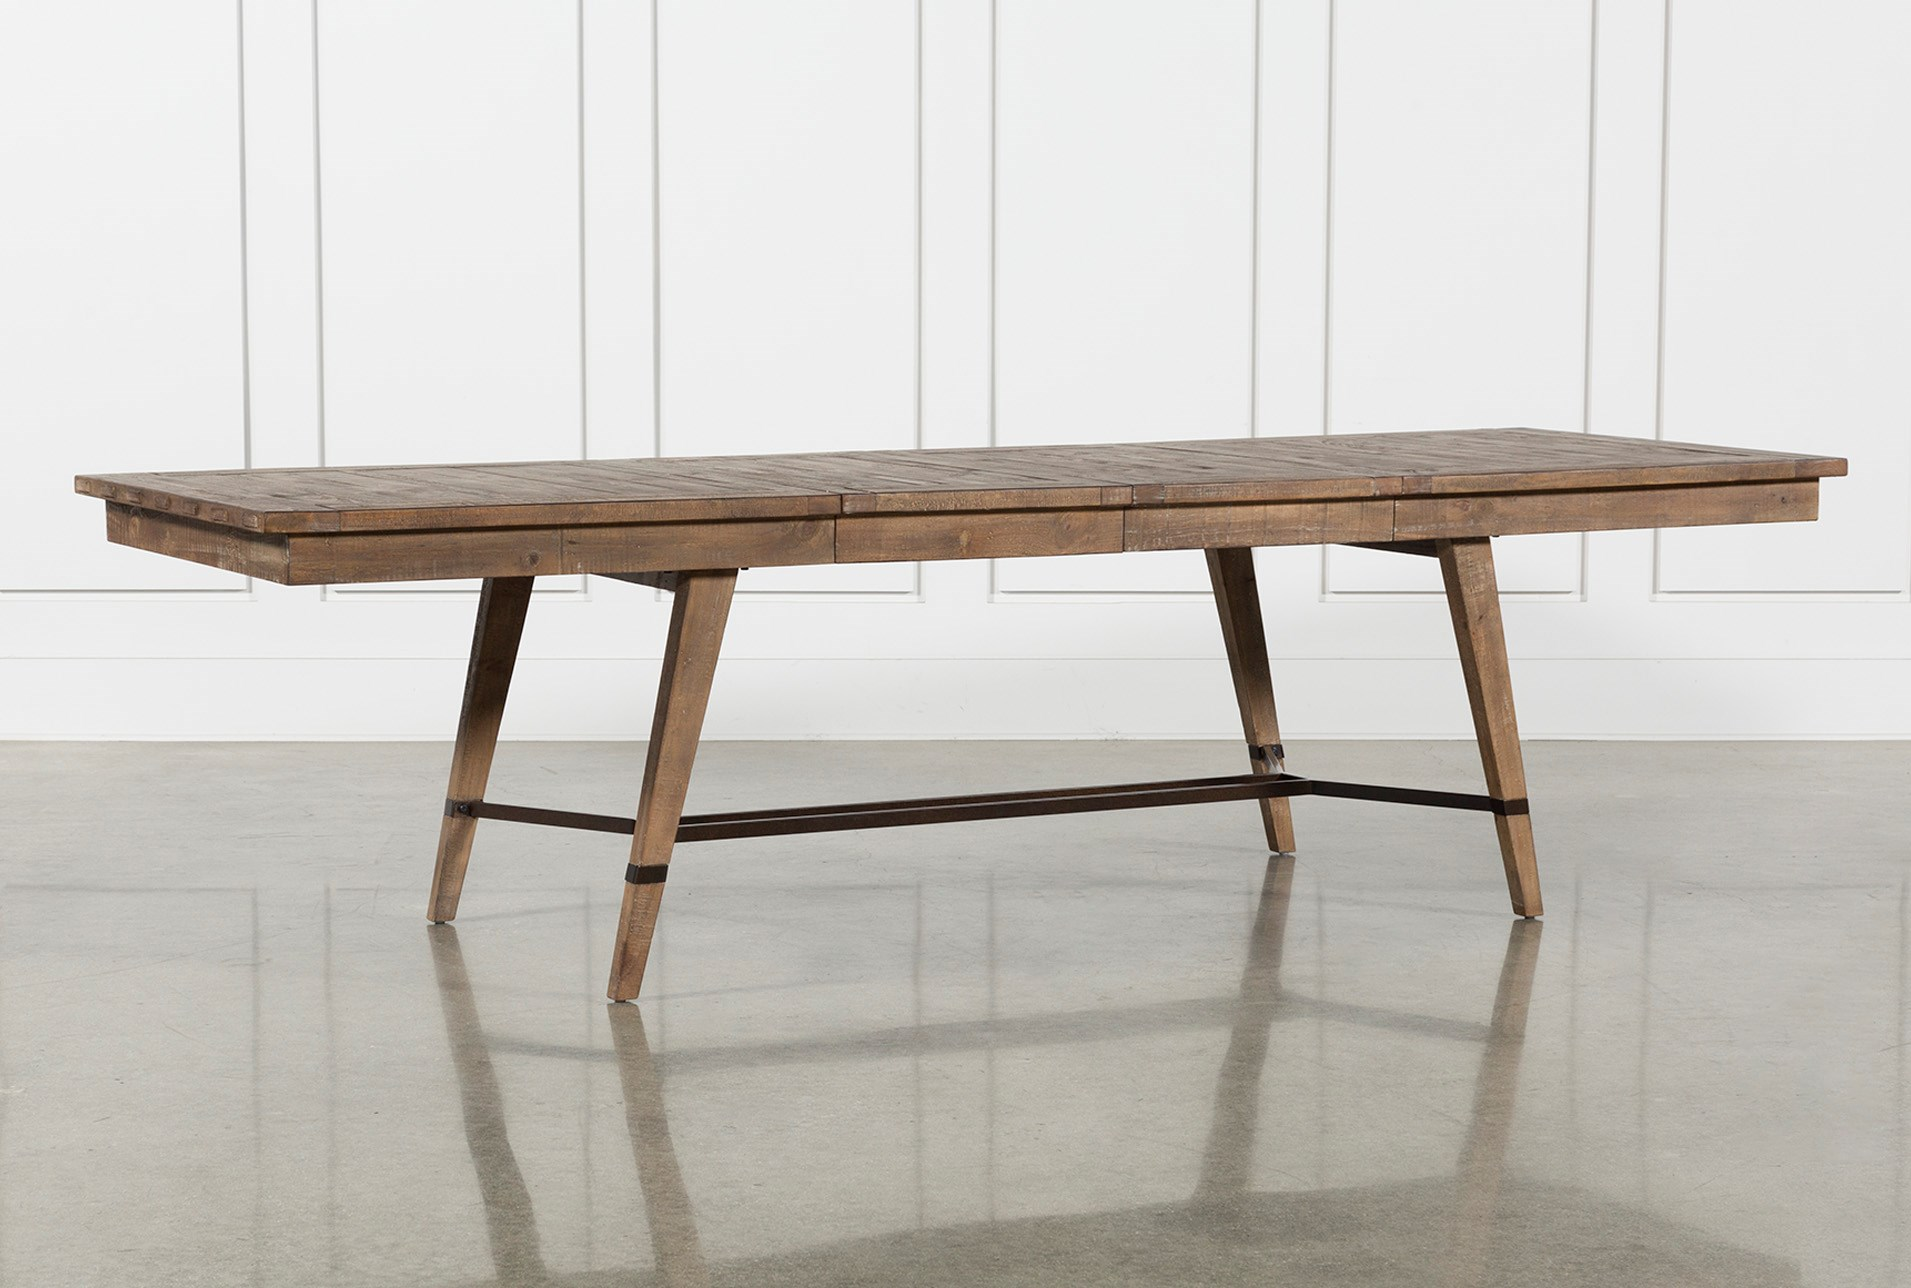 Craftsman rectangle extension dining table qty 1 has been successfully added to your cart